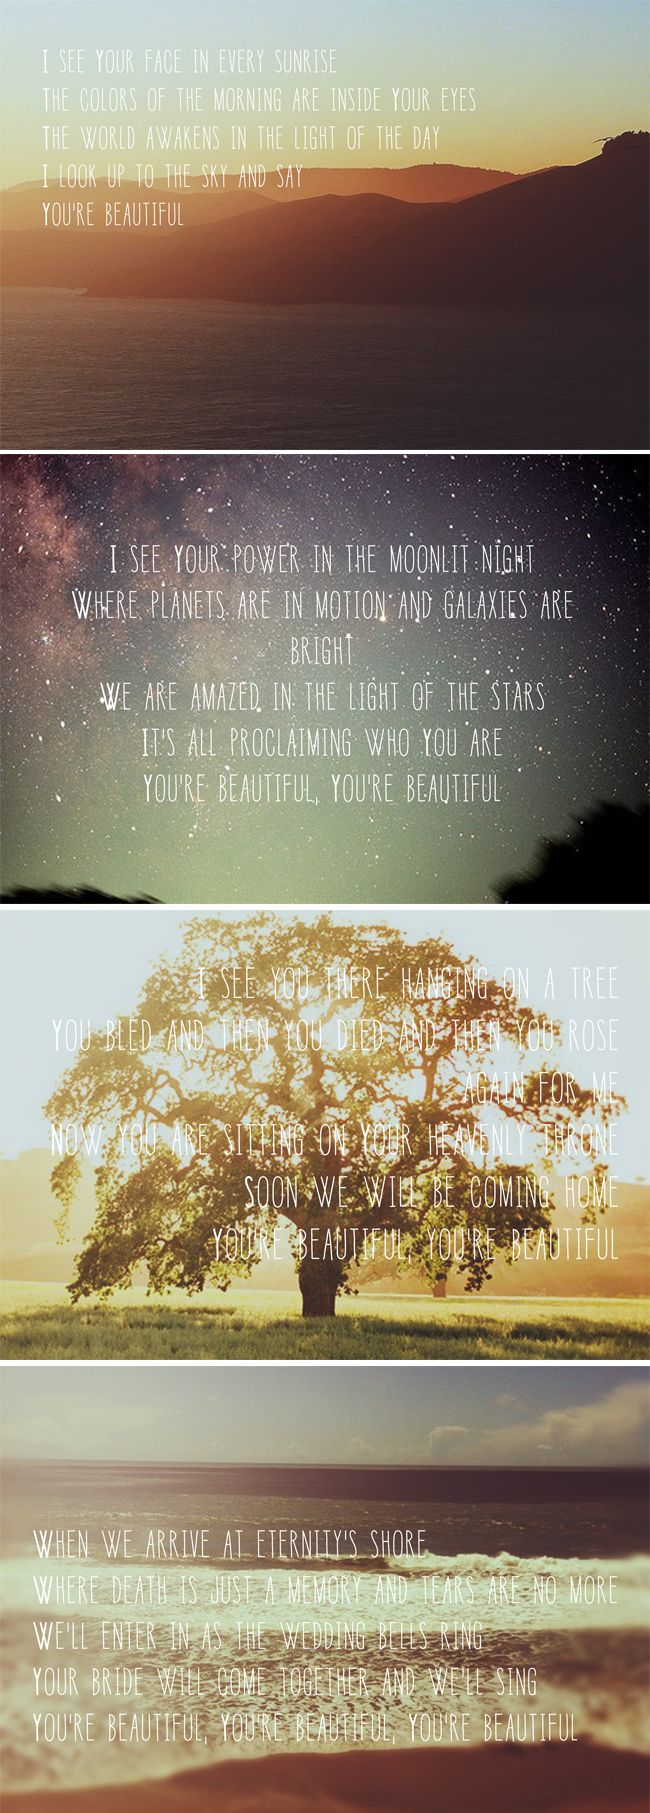 You're Beautiful - Phil Wickham  ♥ I want this framed and in my house! // Lord, You're beautiful! <3